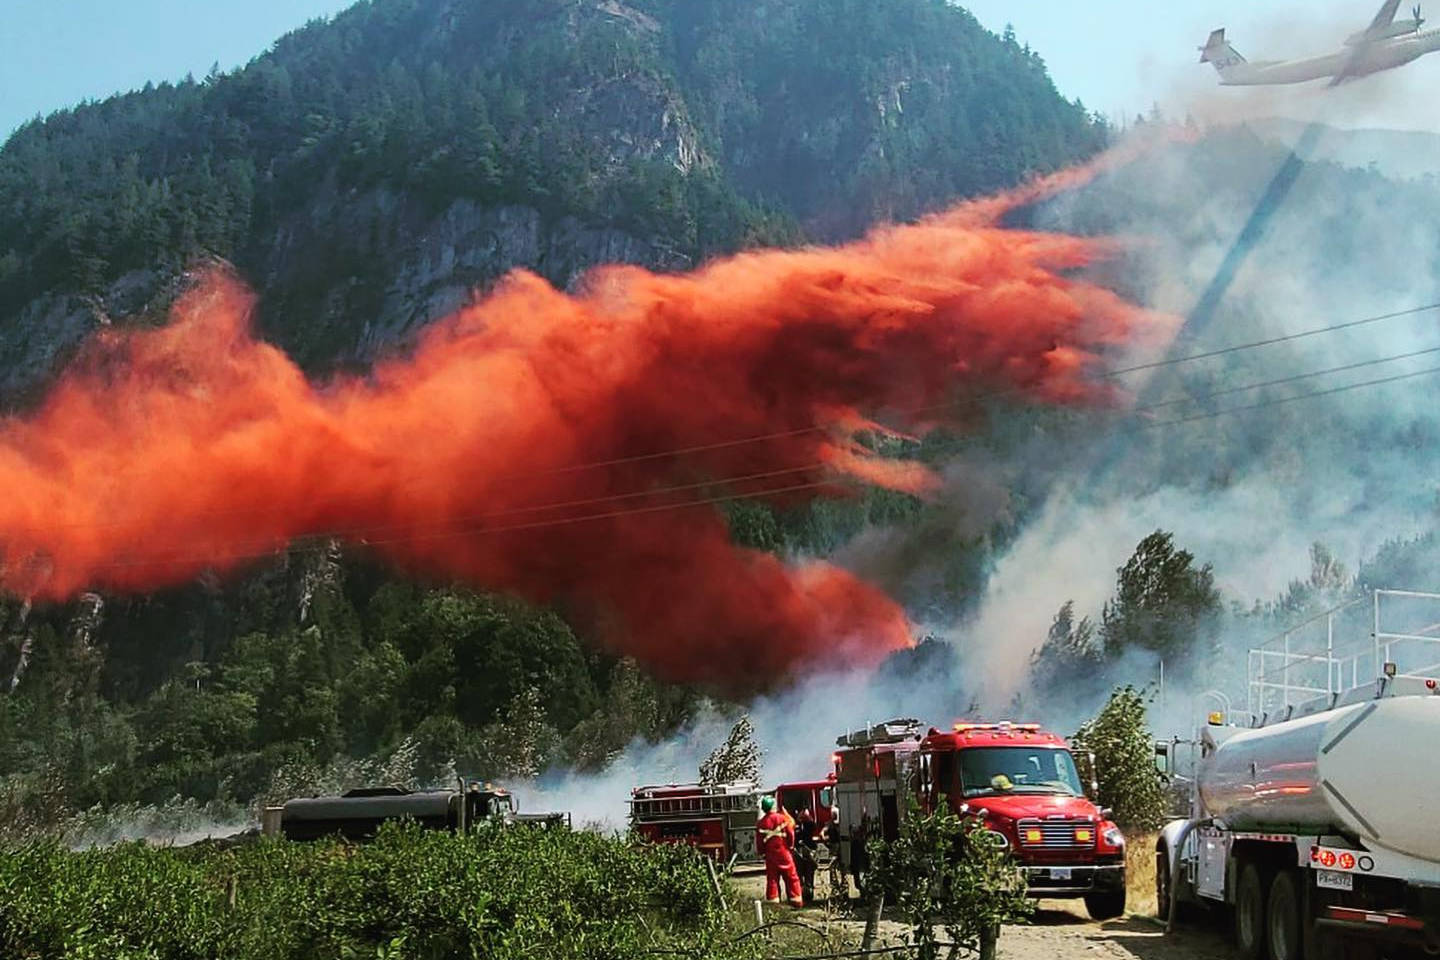 B.C. Wildfire Service dropped fire retardant on a wildland fire in Laidlaw on Aug. 12, 2021. (Hope Fire Department/ Submitted)